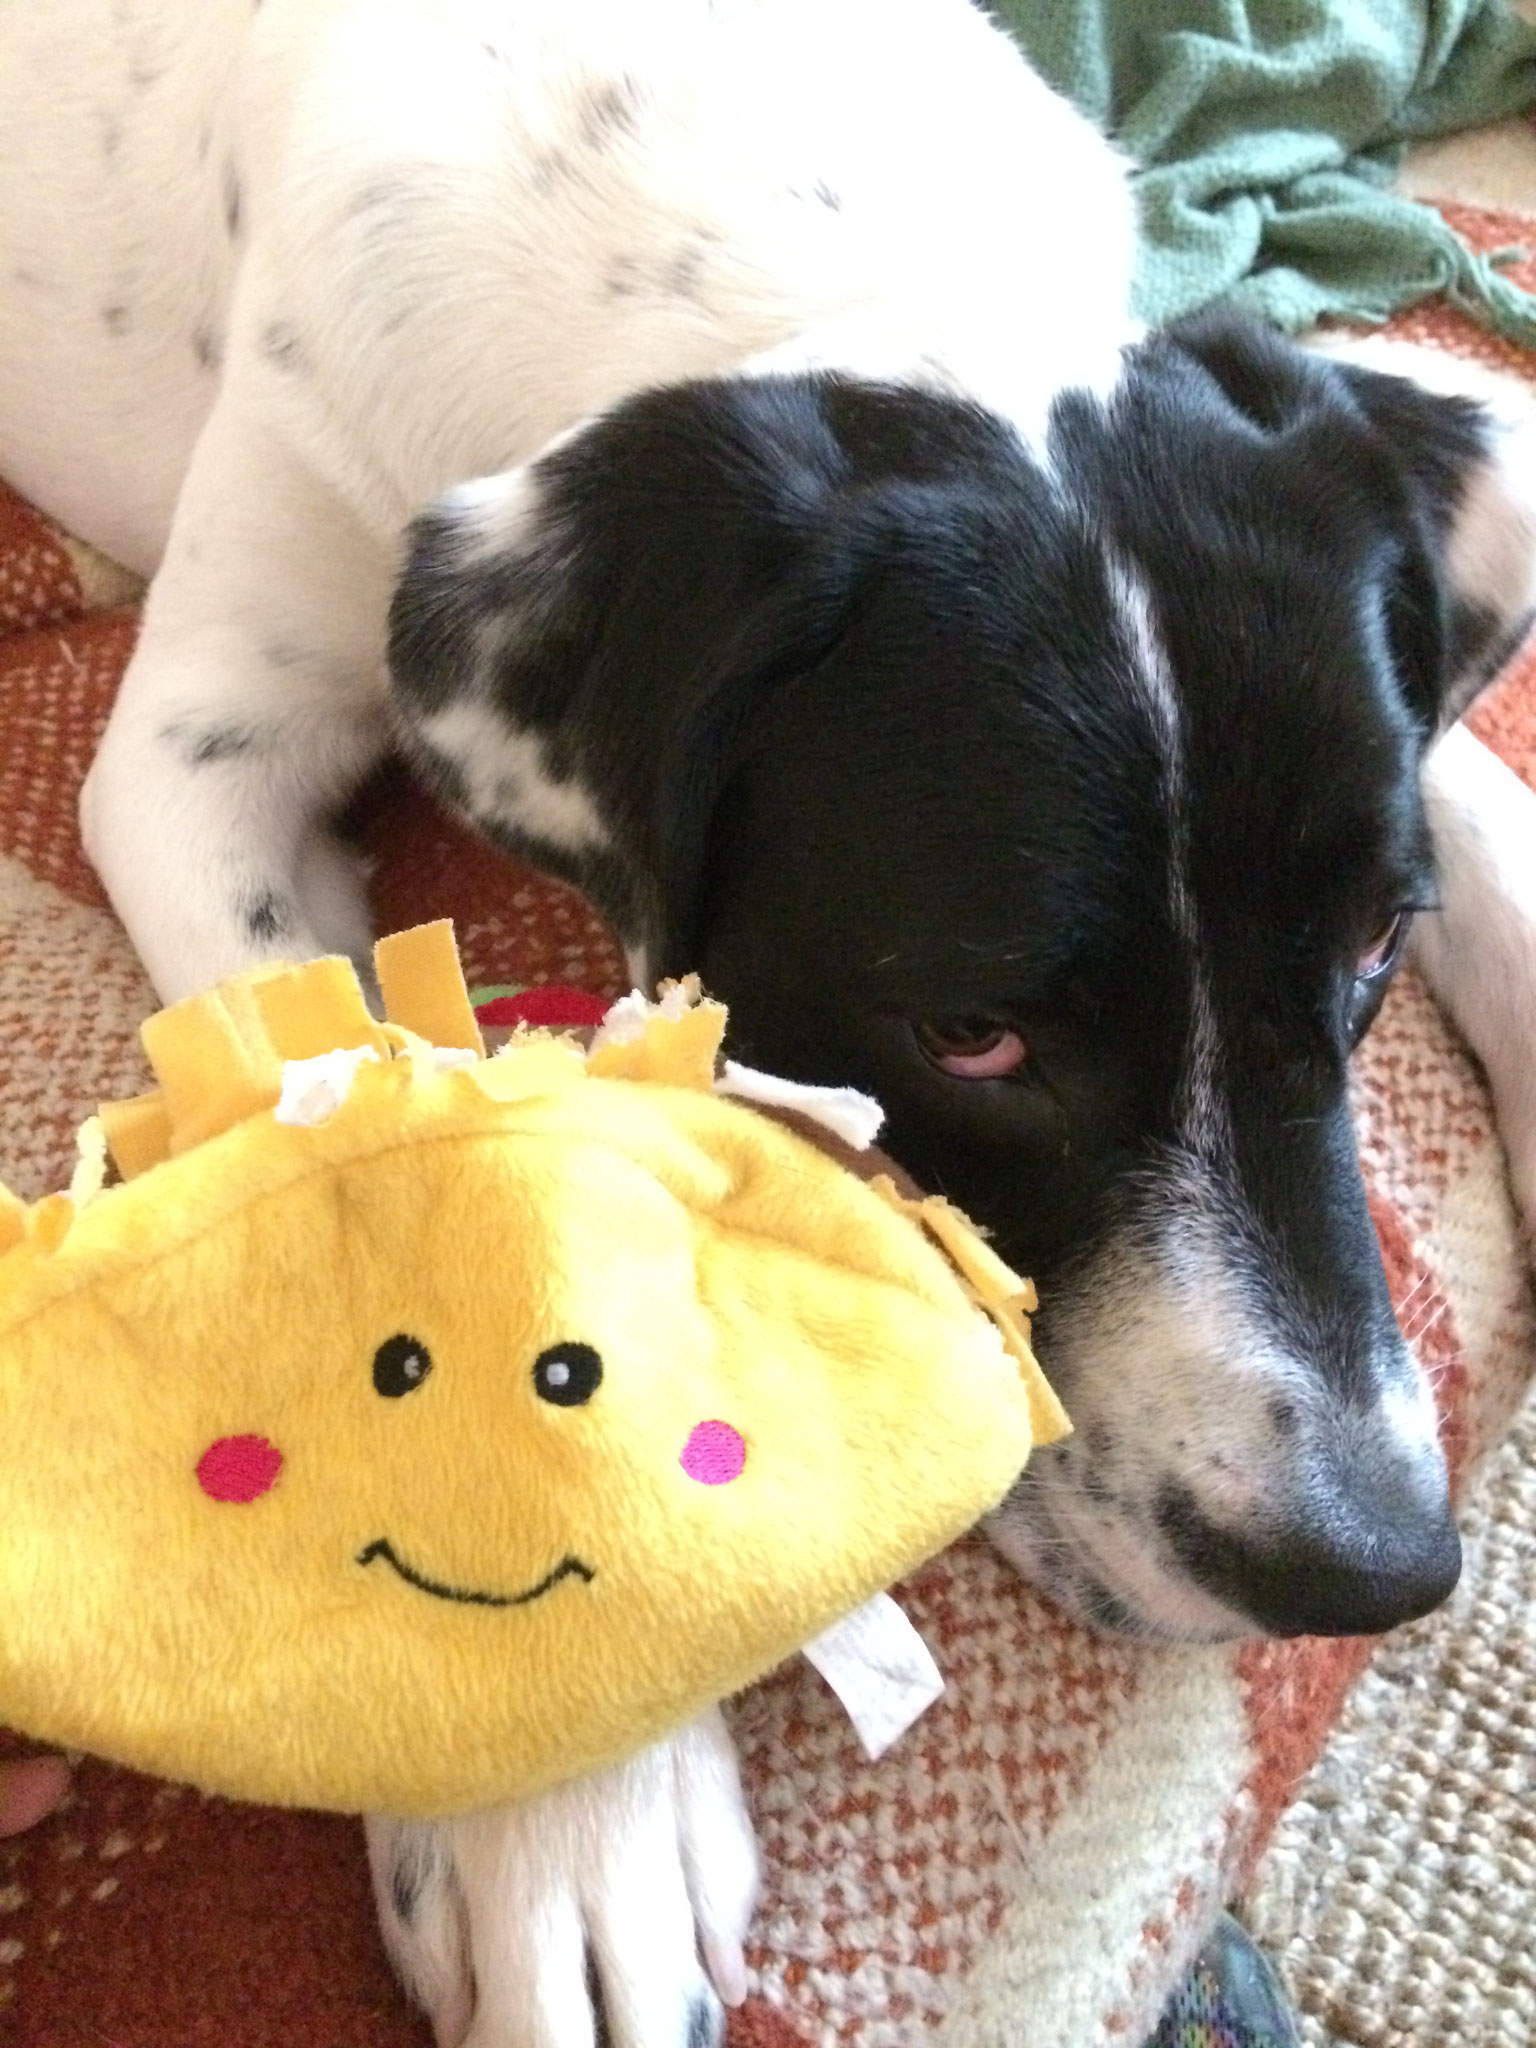 Finn (pointer) waits patiently for his new taco toy